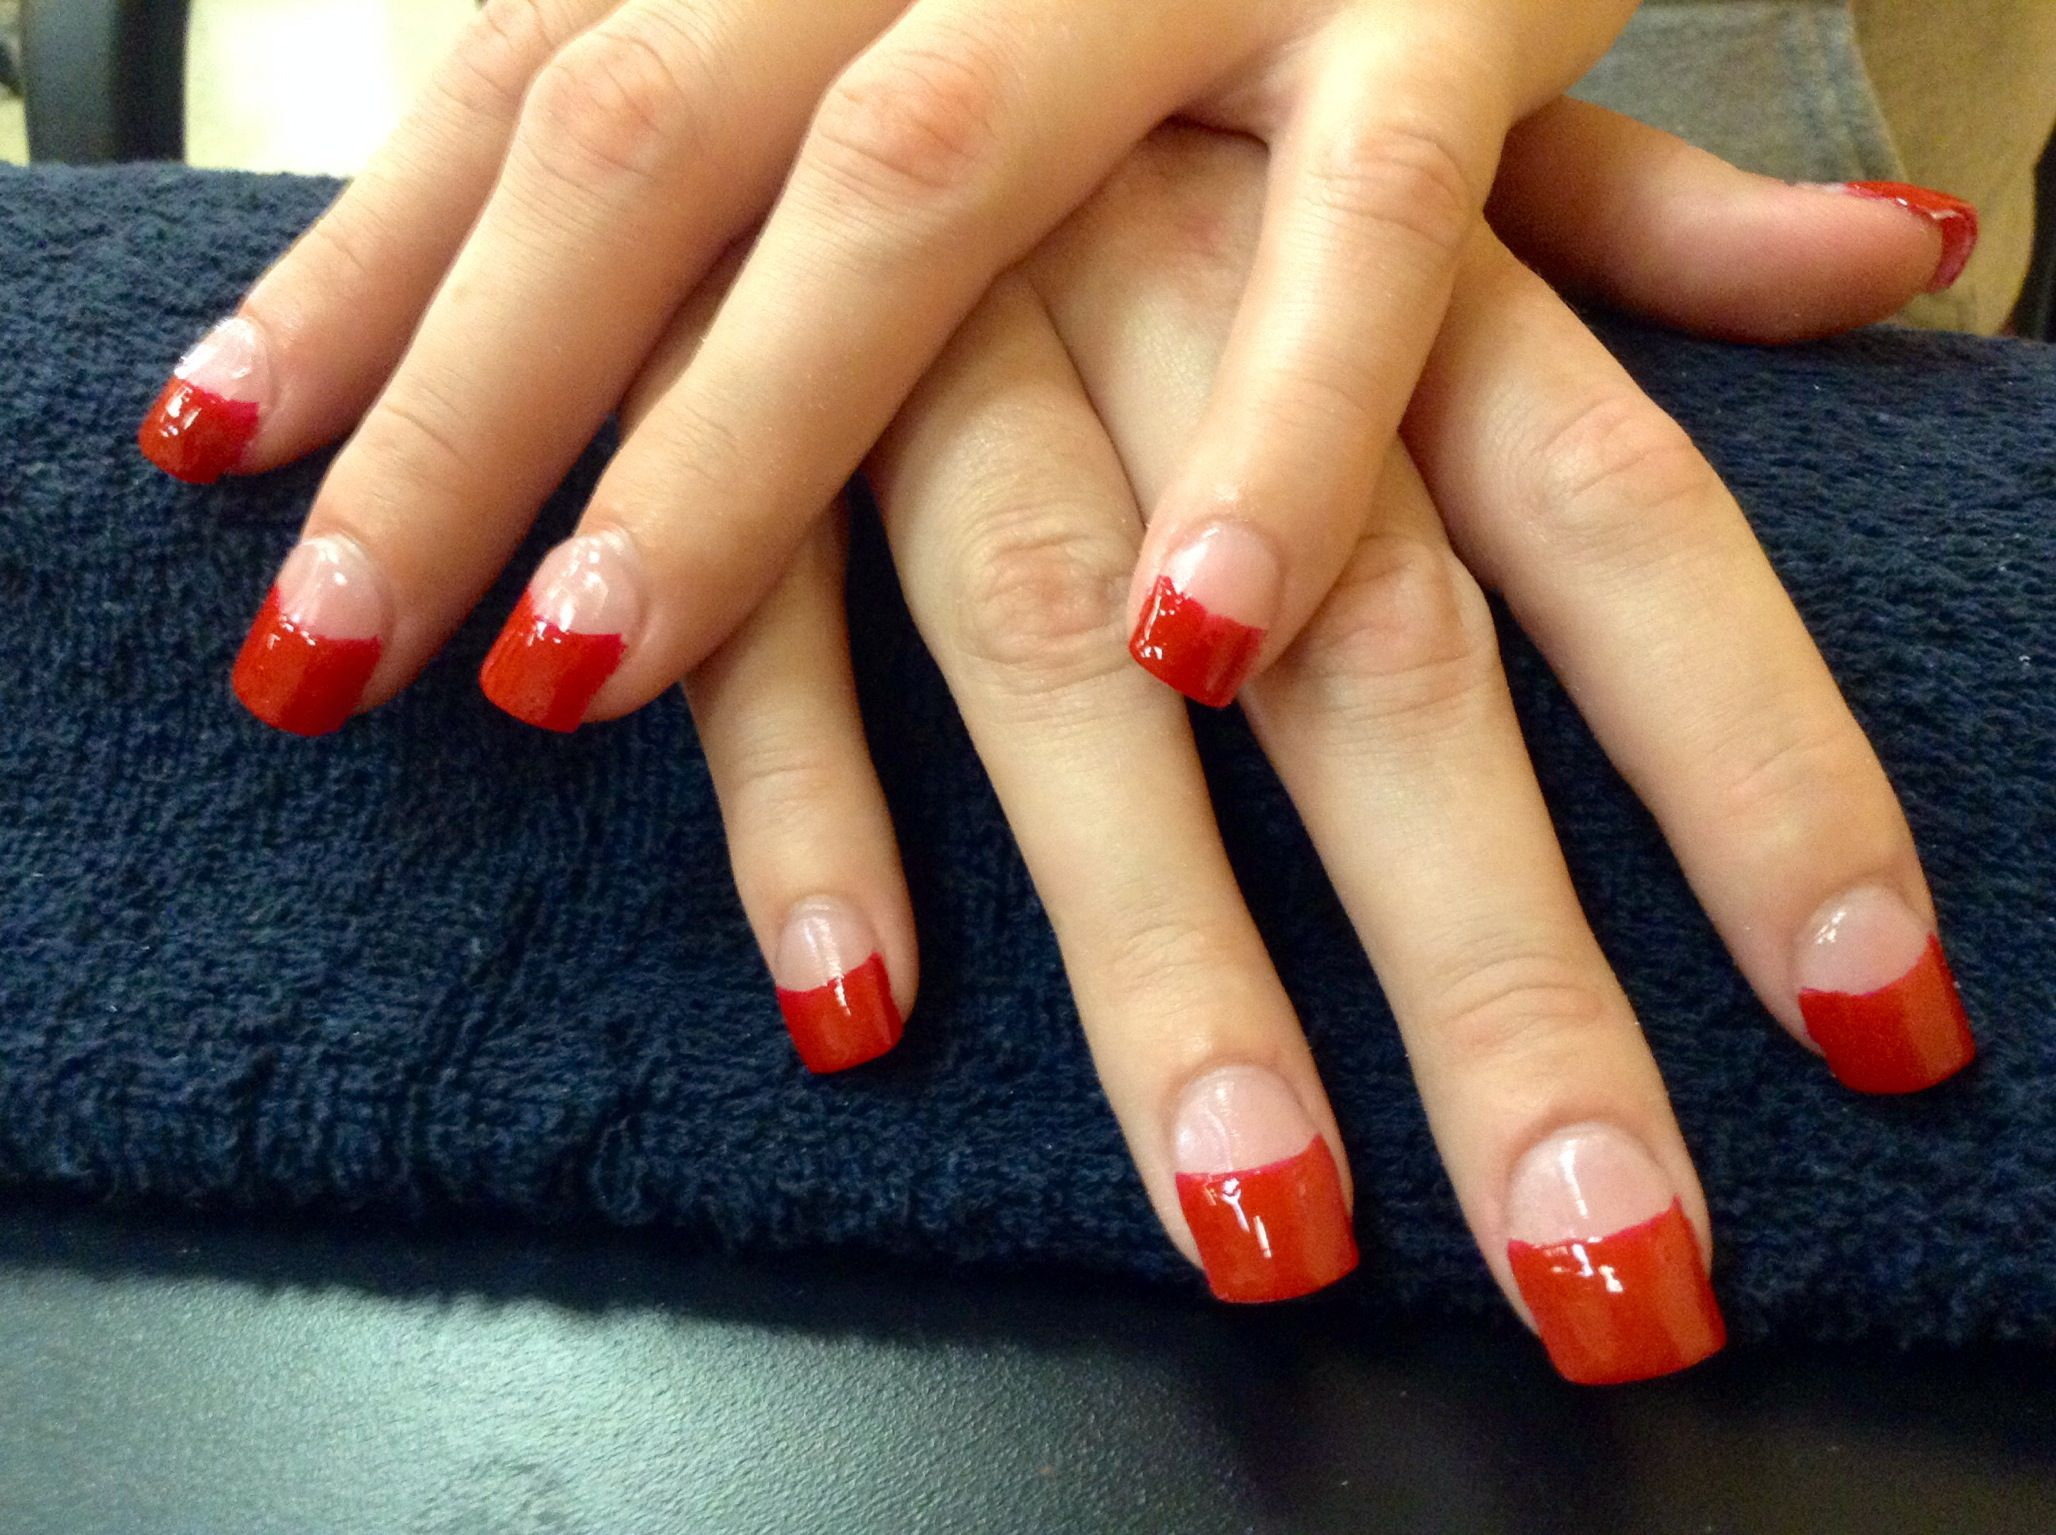 Heavy red French tip acrylics done at empire beauty school | Nail ...